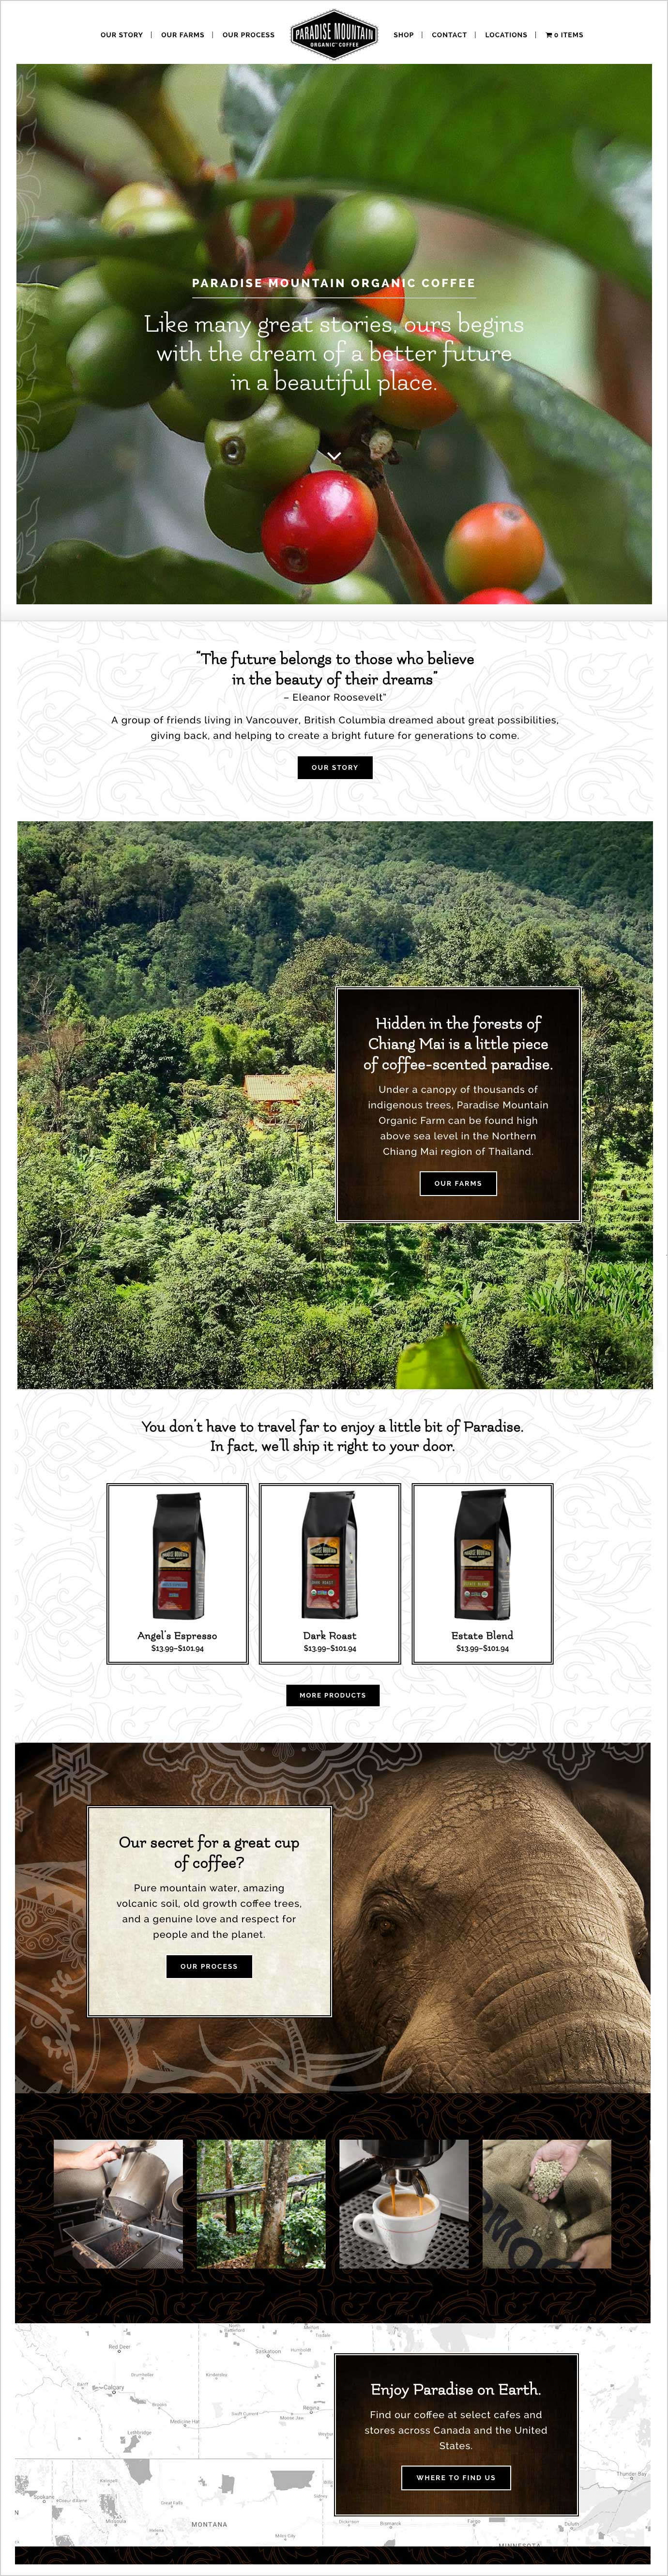 Paradise Mountain Organic Coffee website - Home page